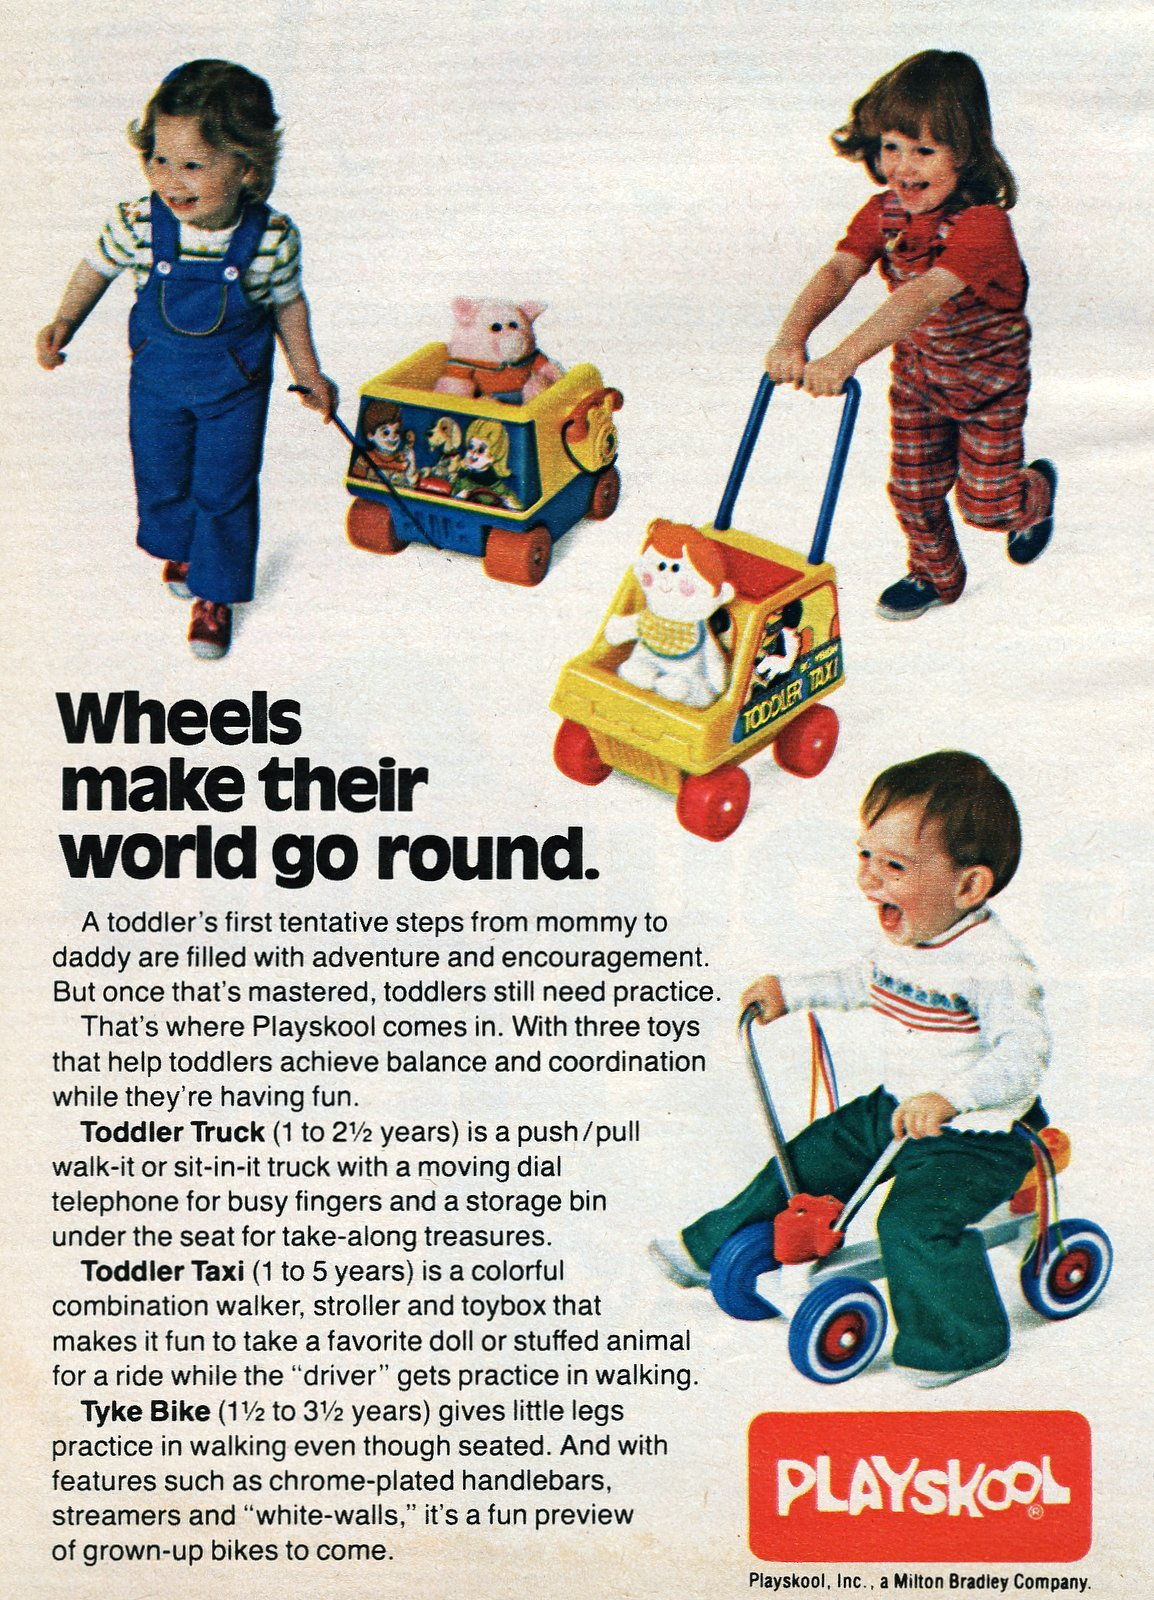 Retro 1970s Playskool Toddler Truck, Toddler Taxi and Tyke Bike toys